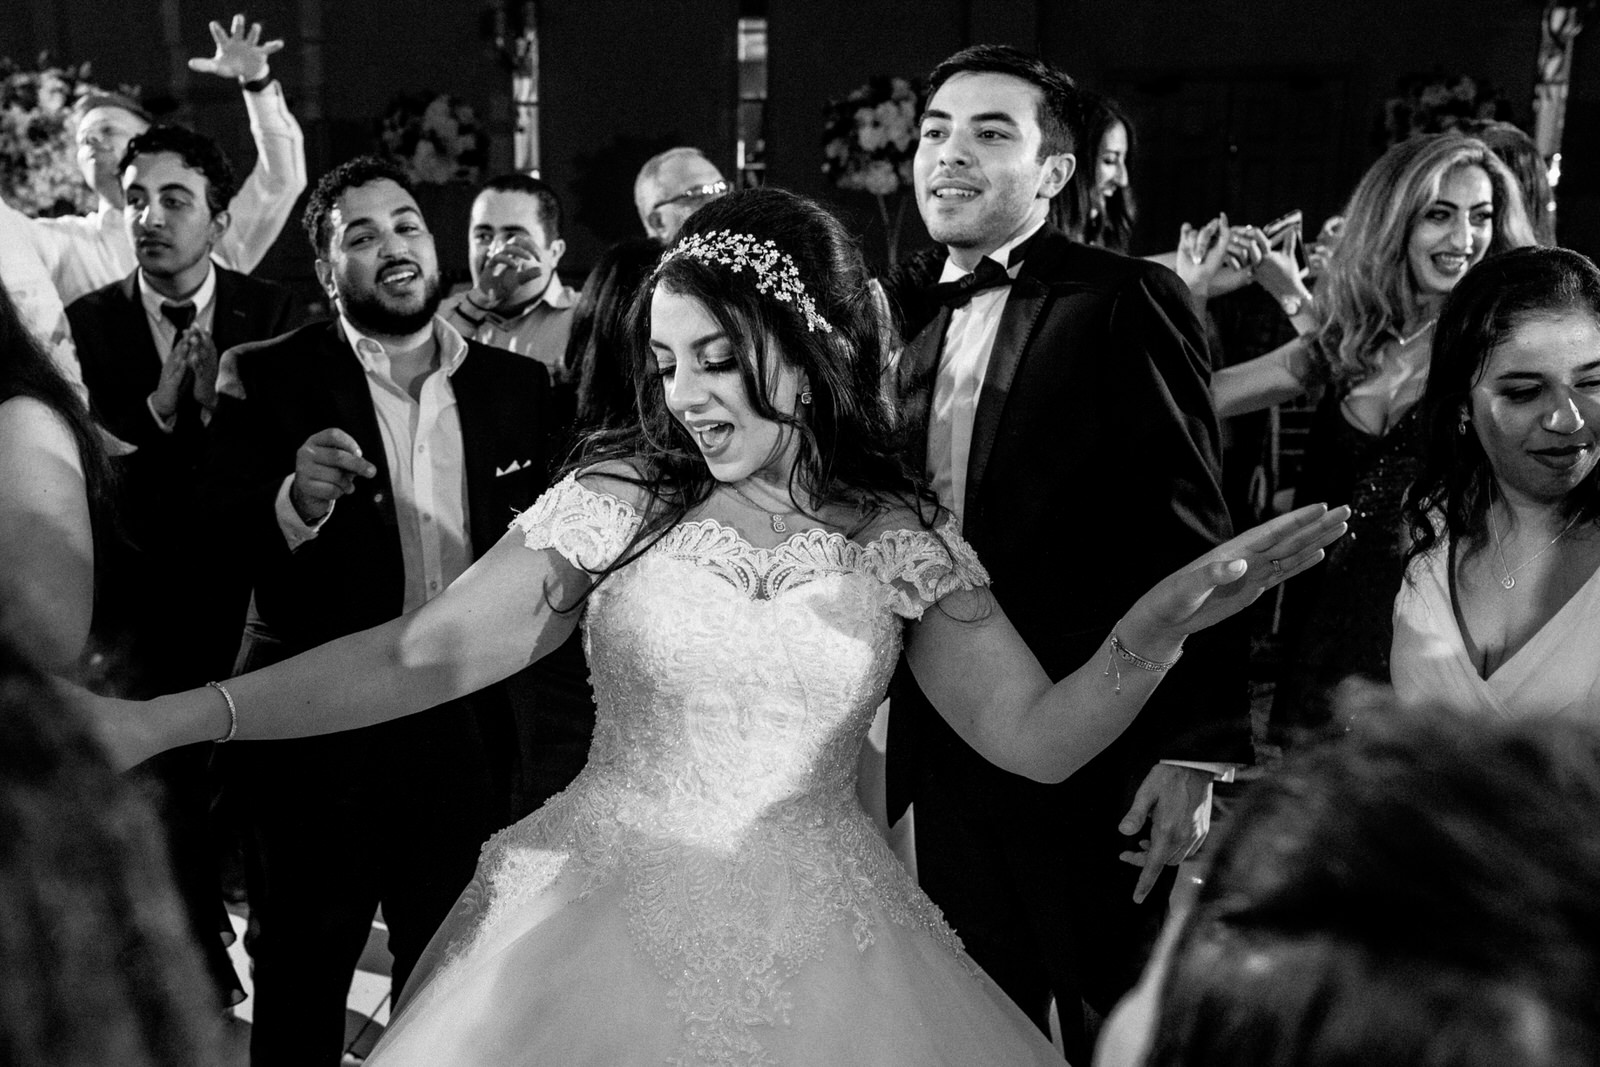 bride dancing with guests around her